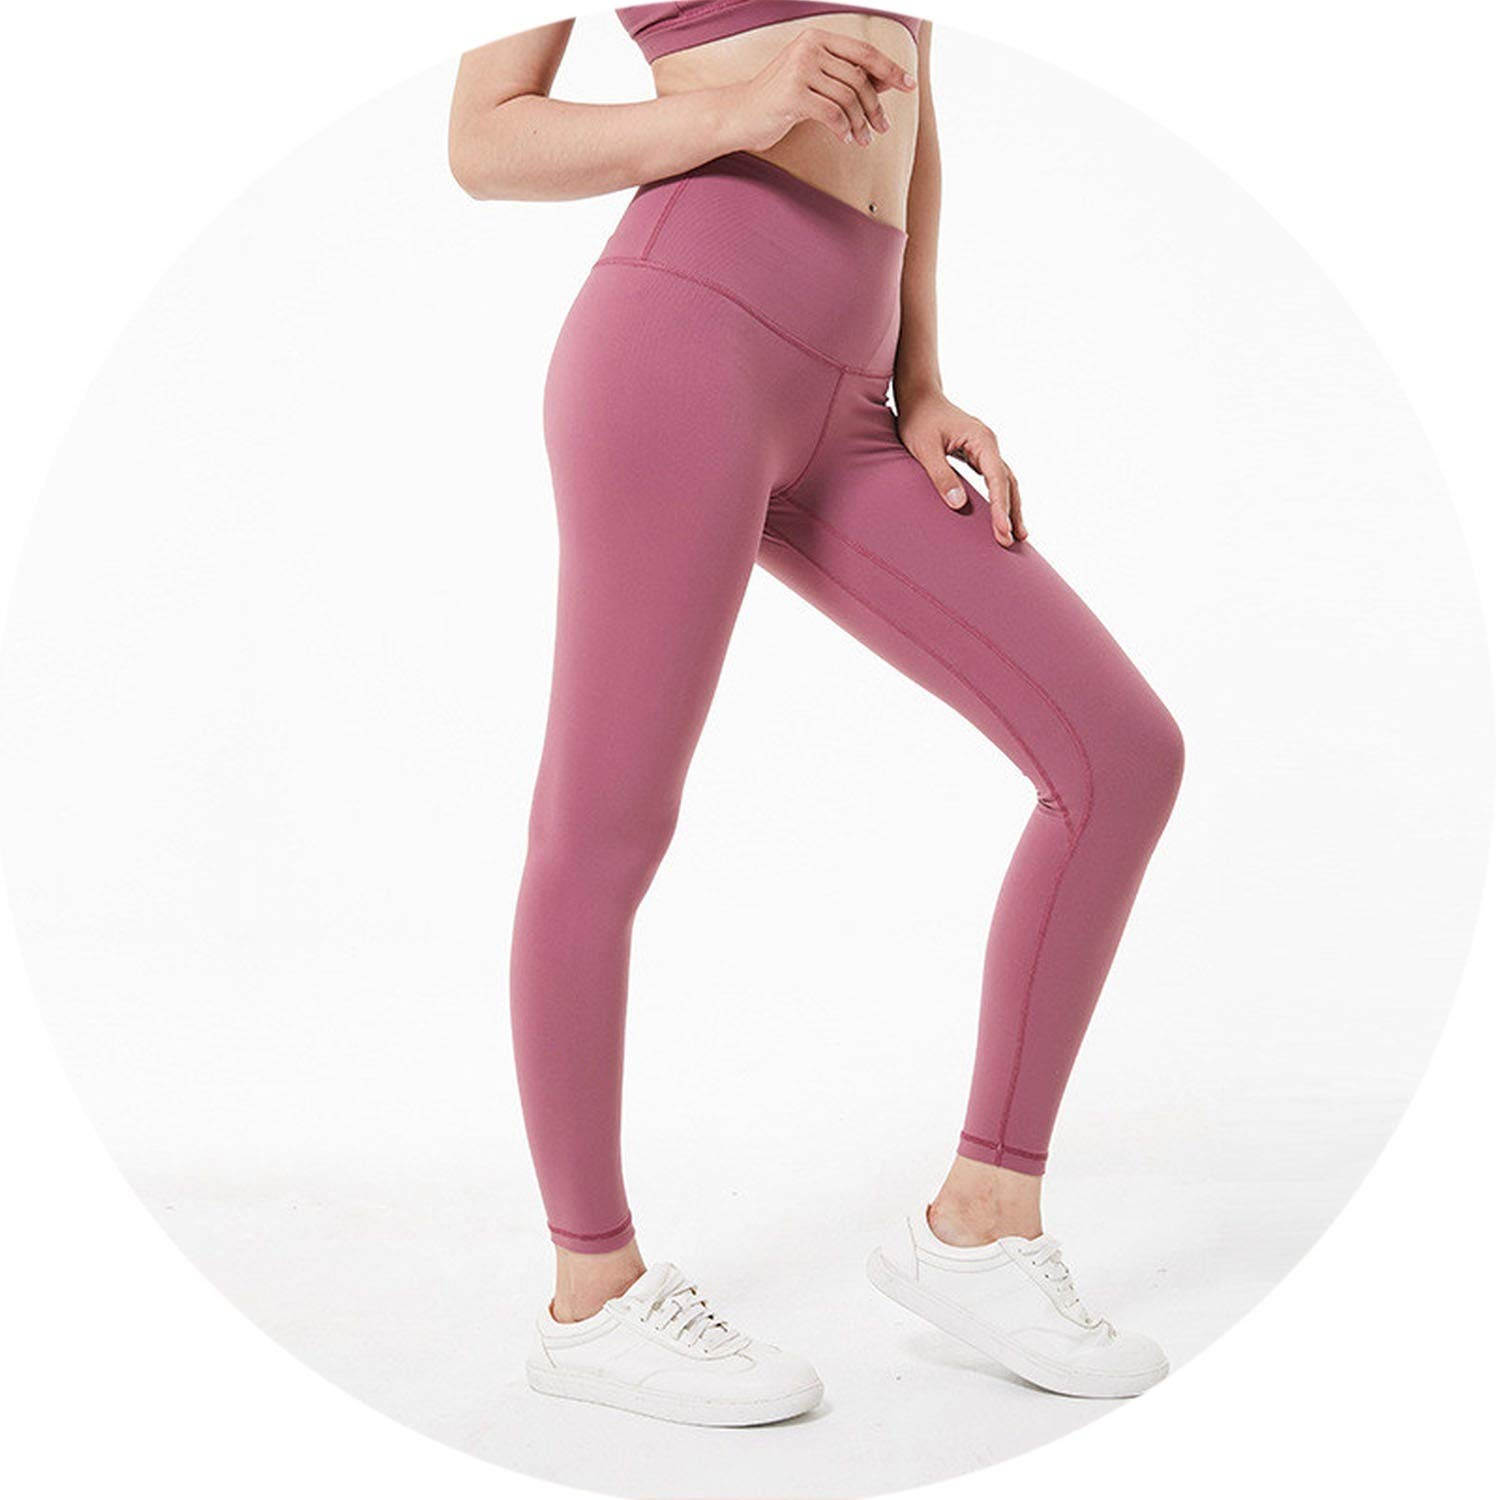 Merlot Red Small Meet fashion Hip Up Yoga Fitness Pants Women Sport Tights AntiSweat High Waist Gym Athletic Leggings